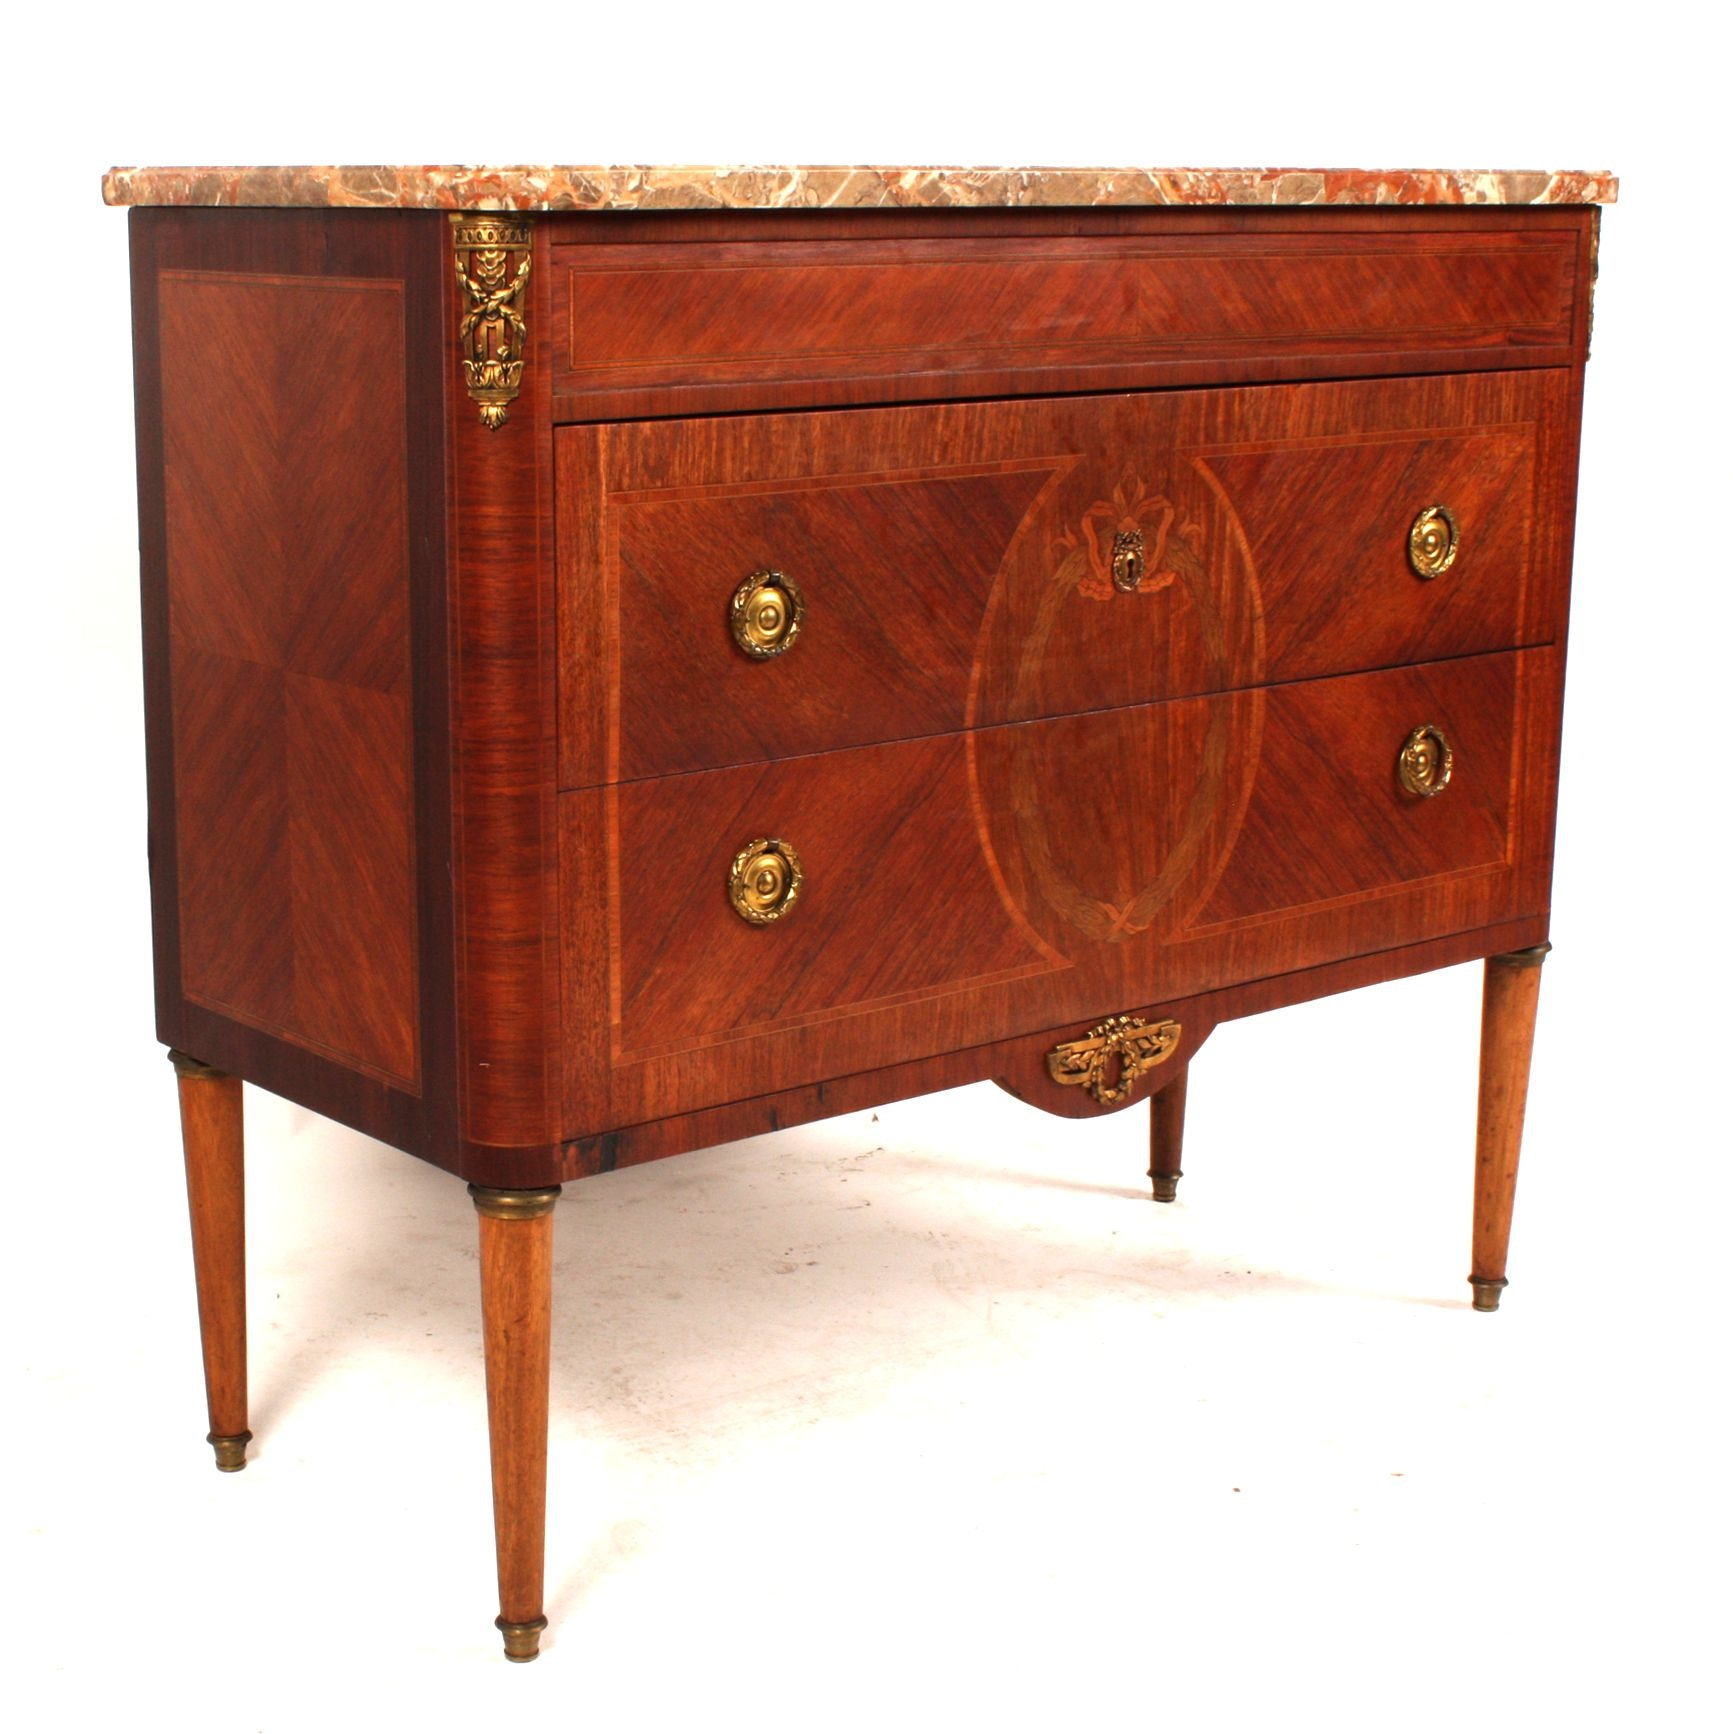 Antique Swedish Gustavian Style Marble Top Commode